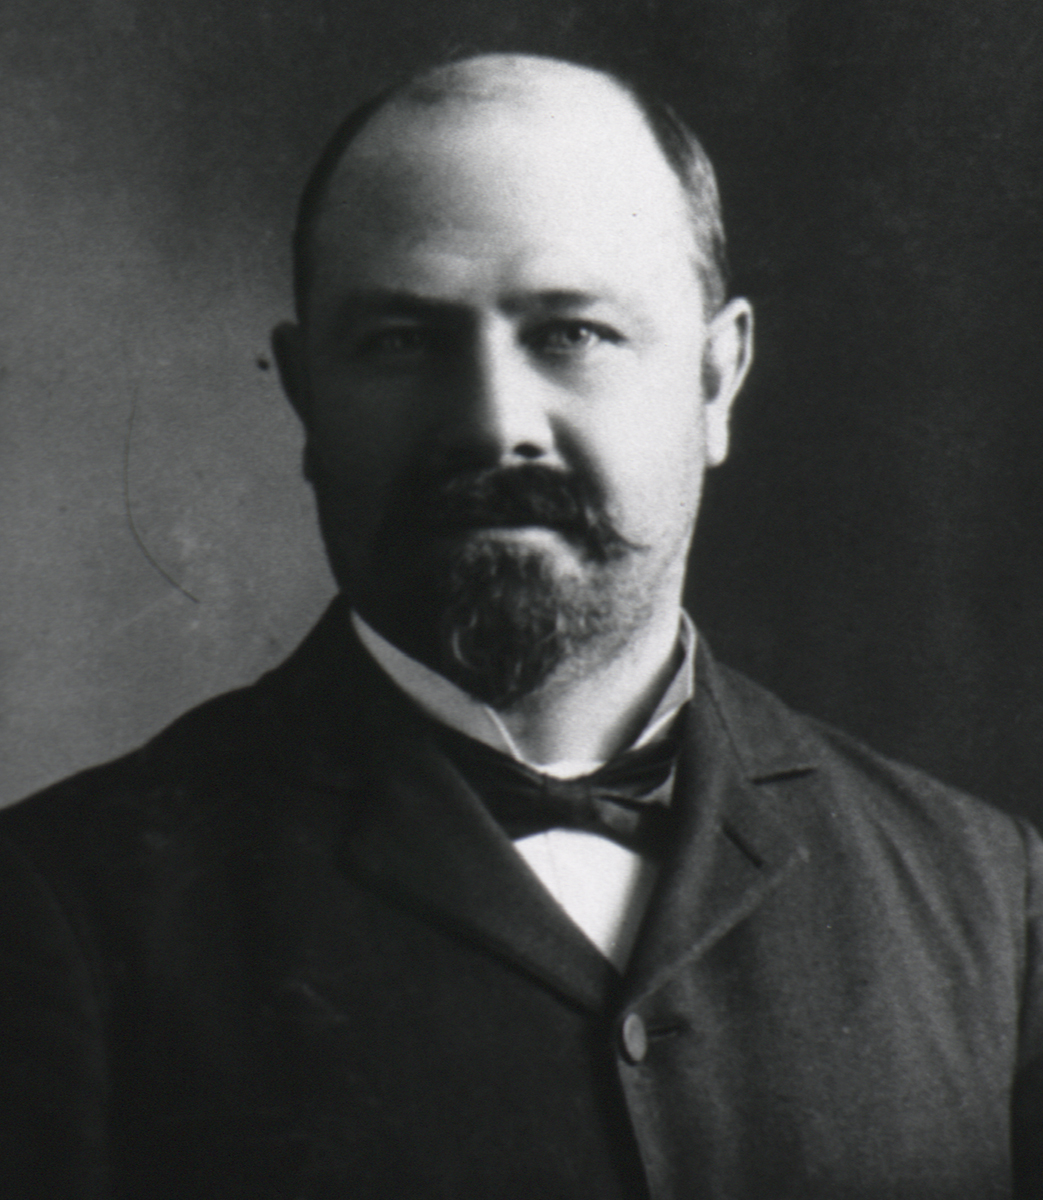 Black and white portrait of bald, bearded middle age white man